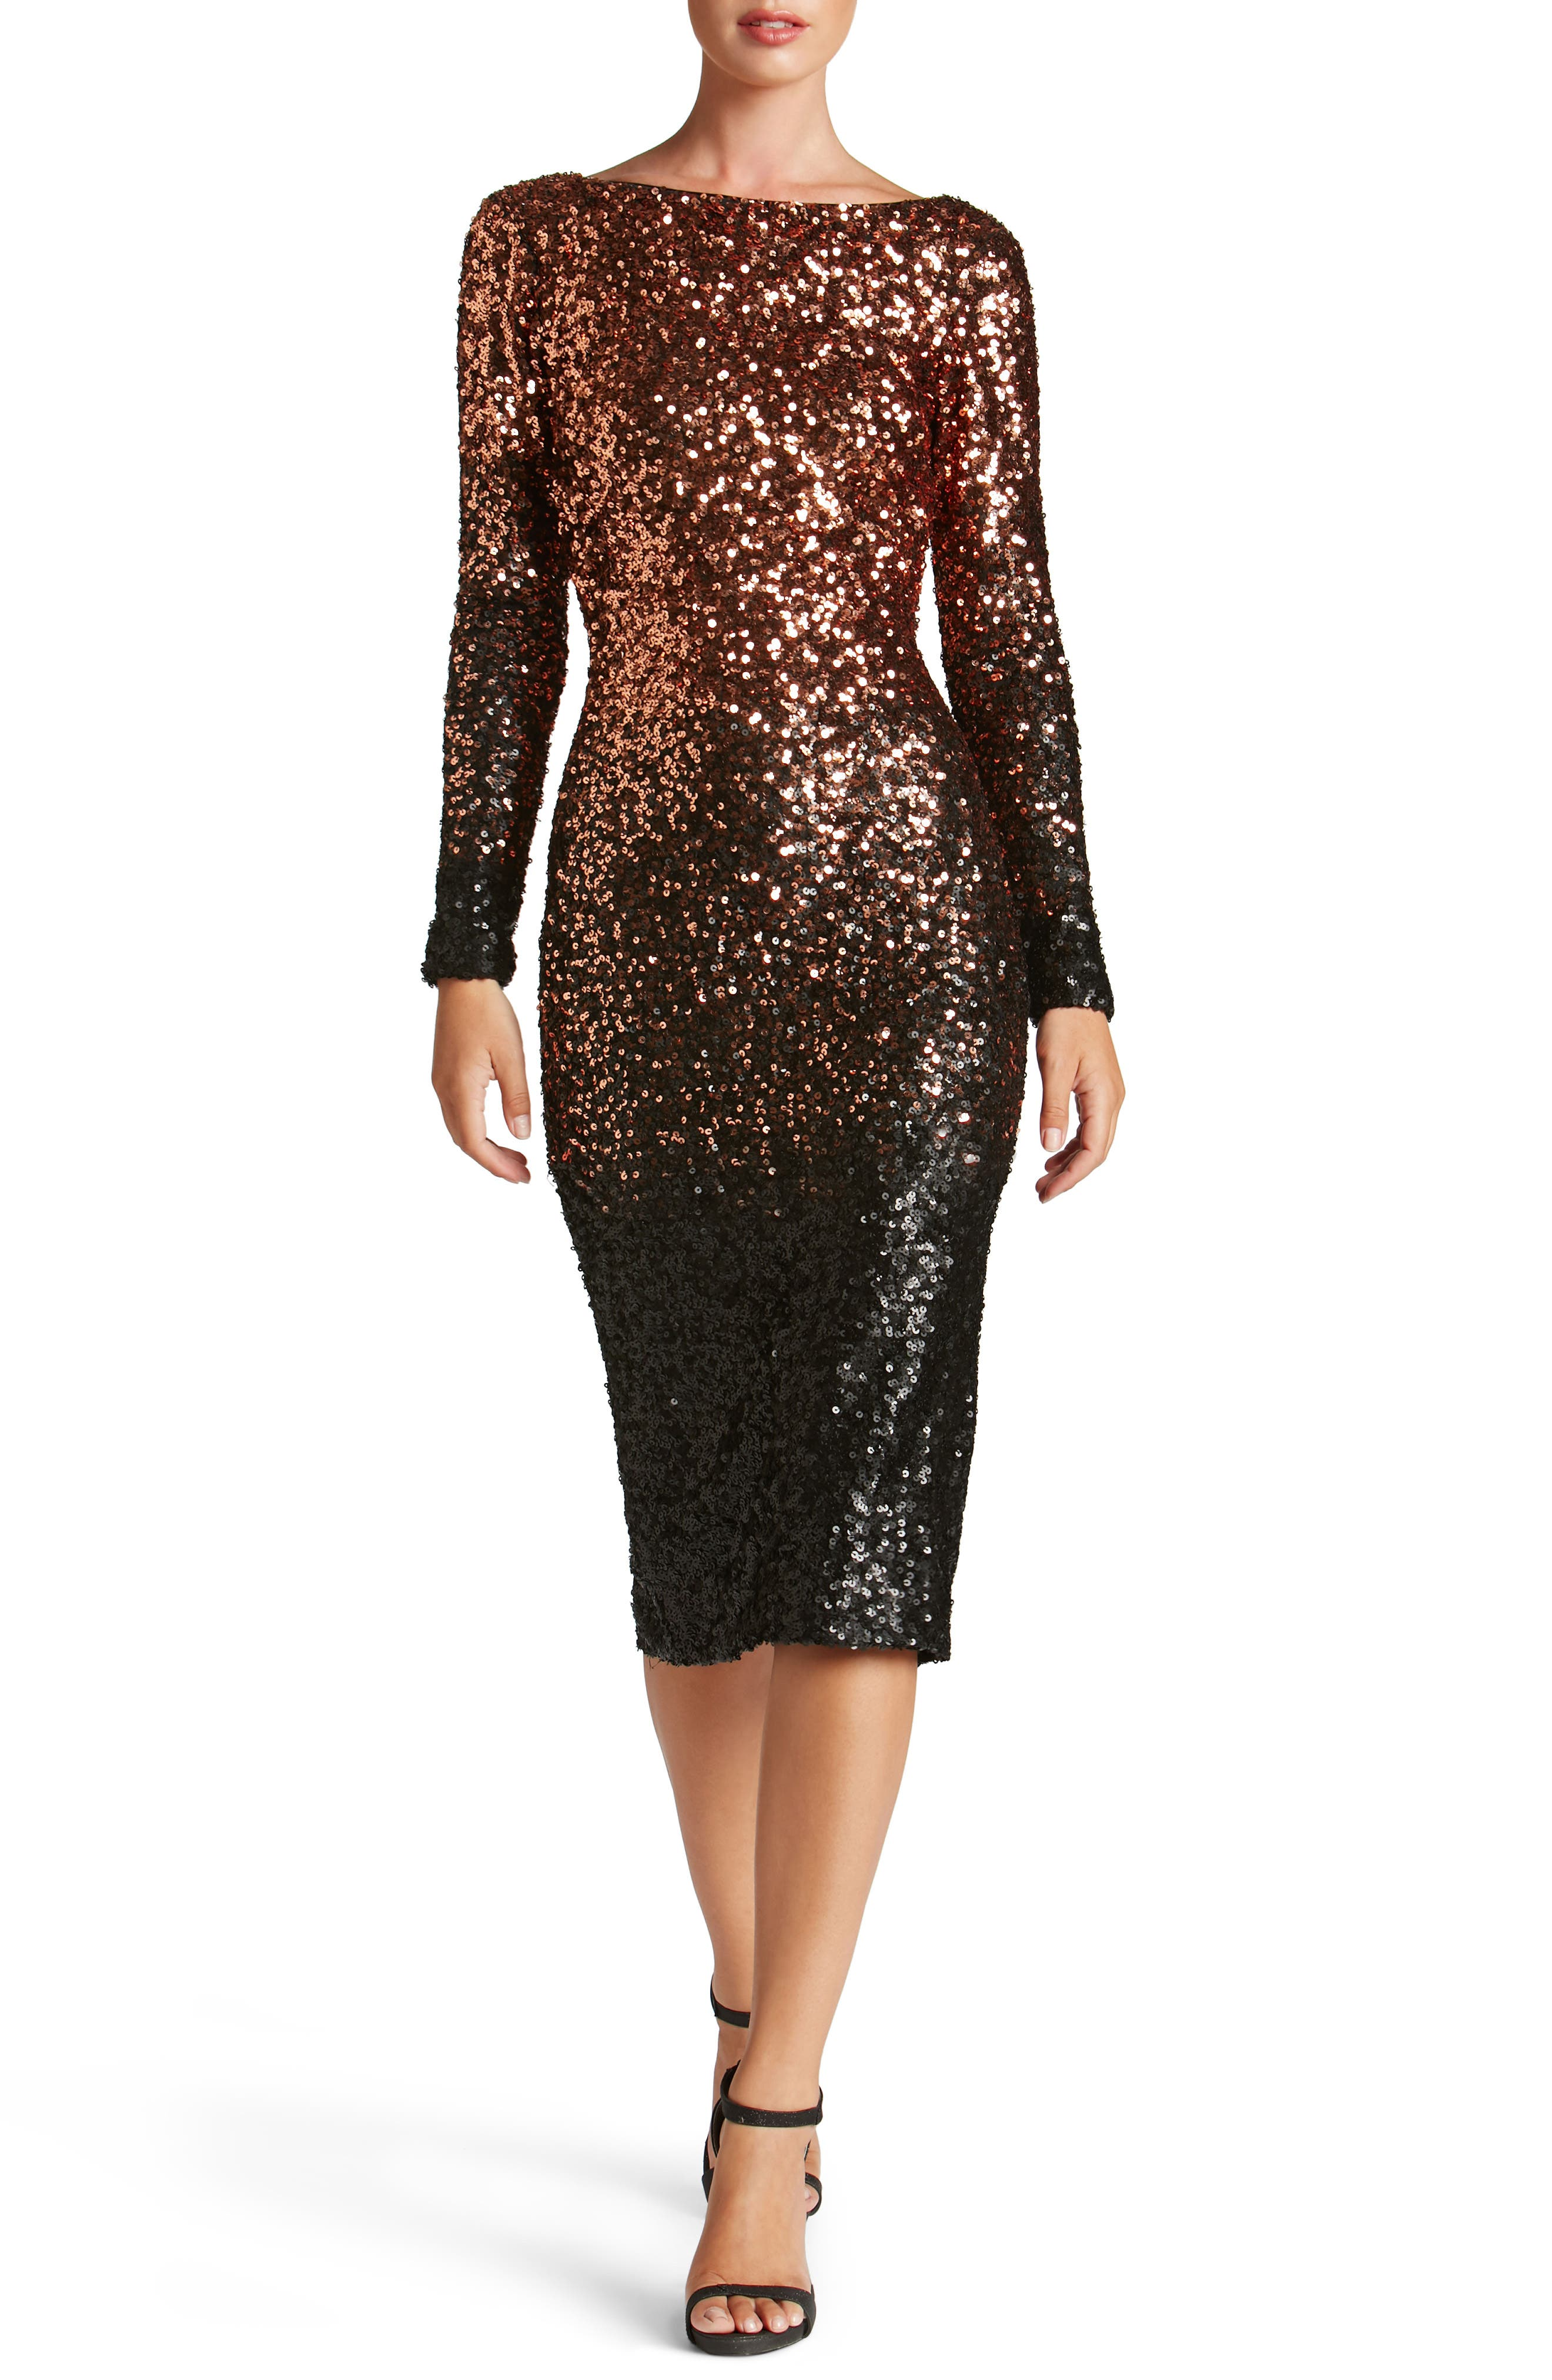 Alternate Image 1 Selected - Dress the Population Emery Ombré Sequin Body-Con Dress